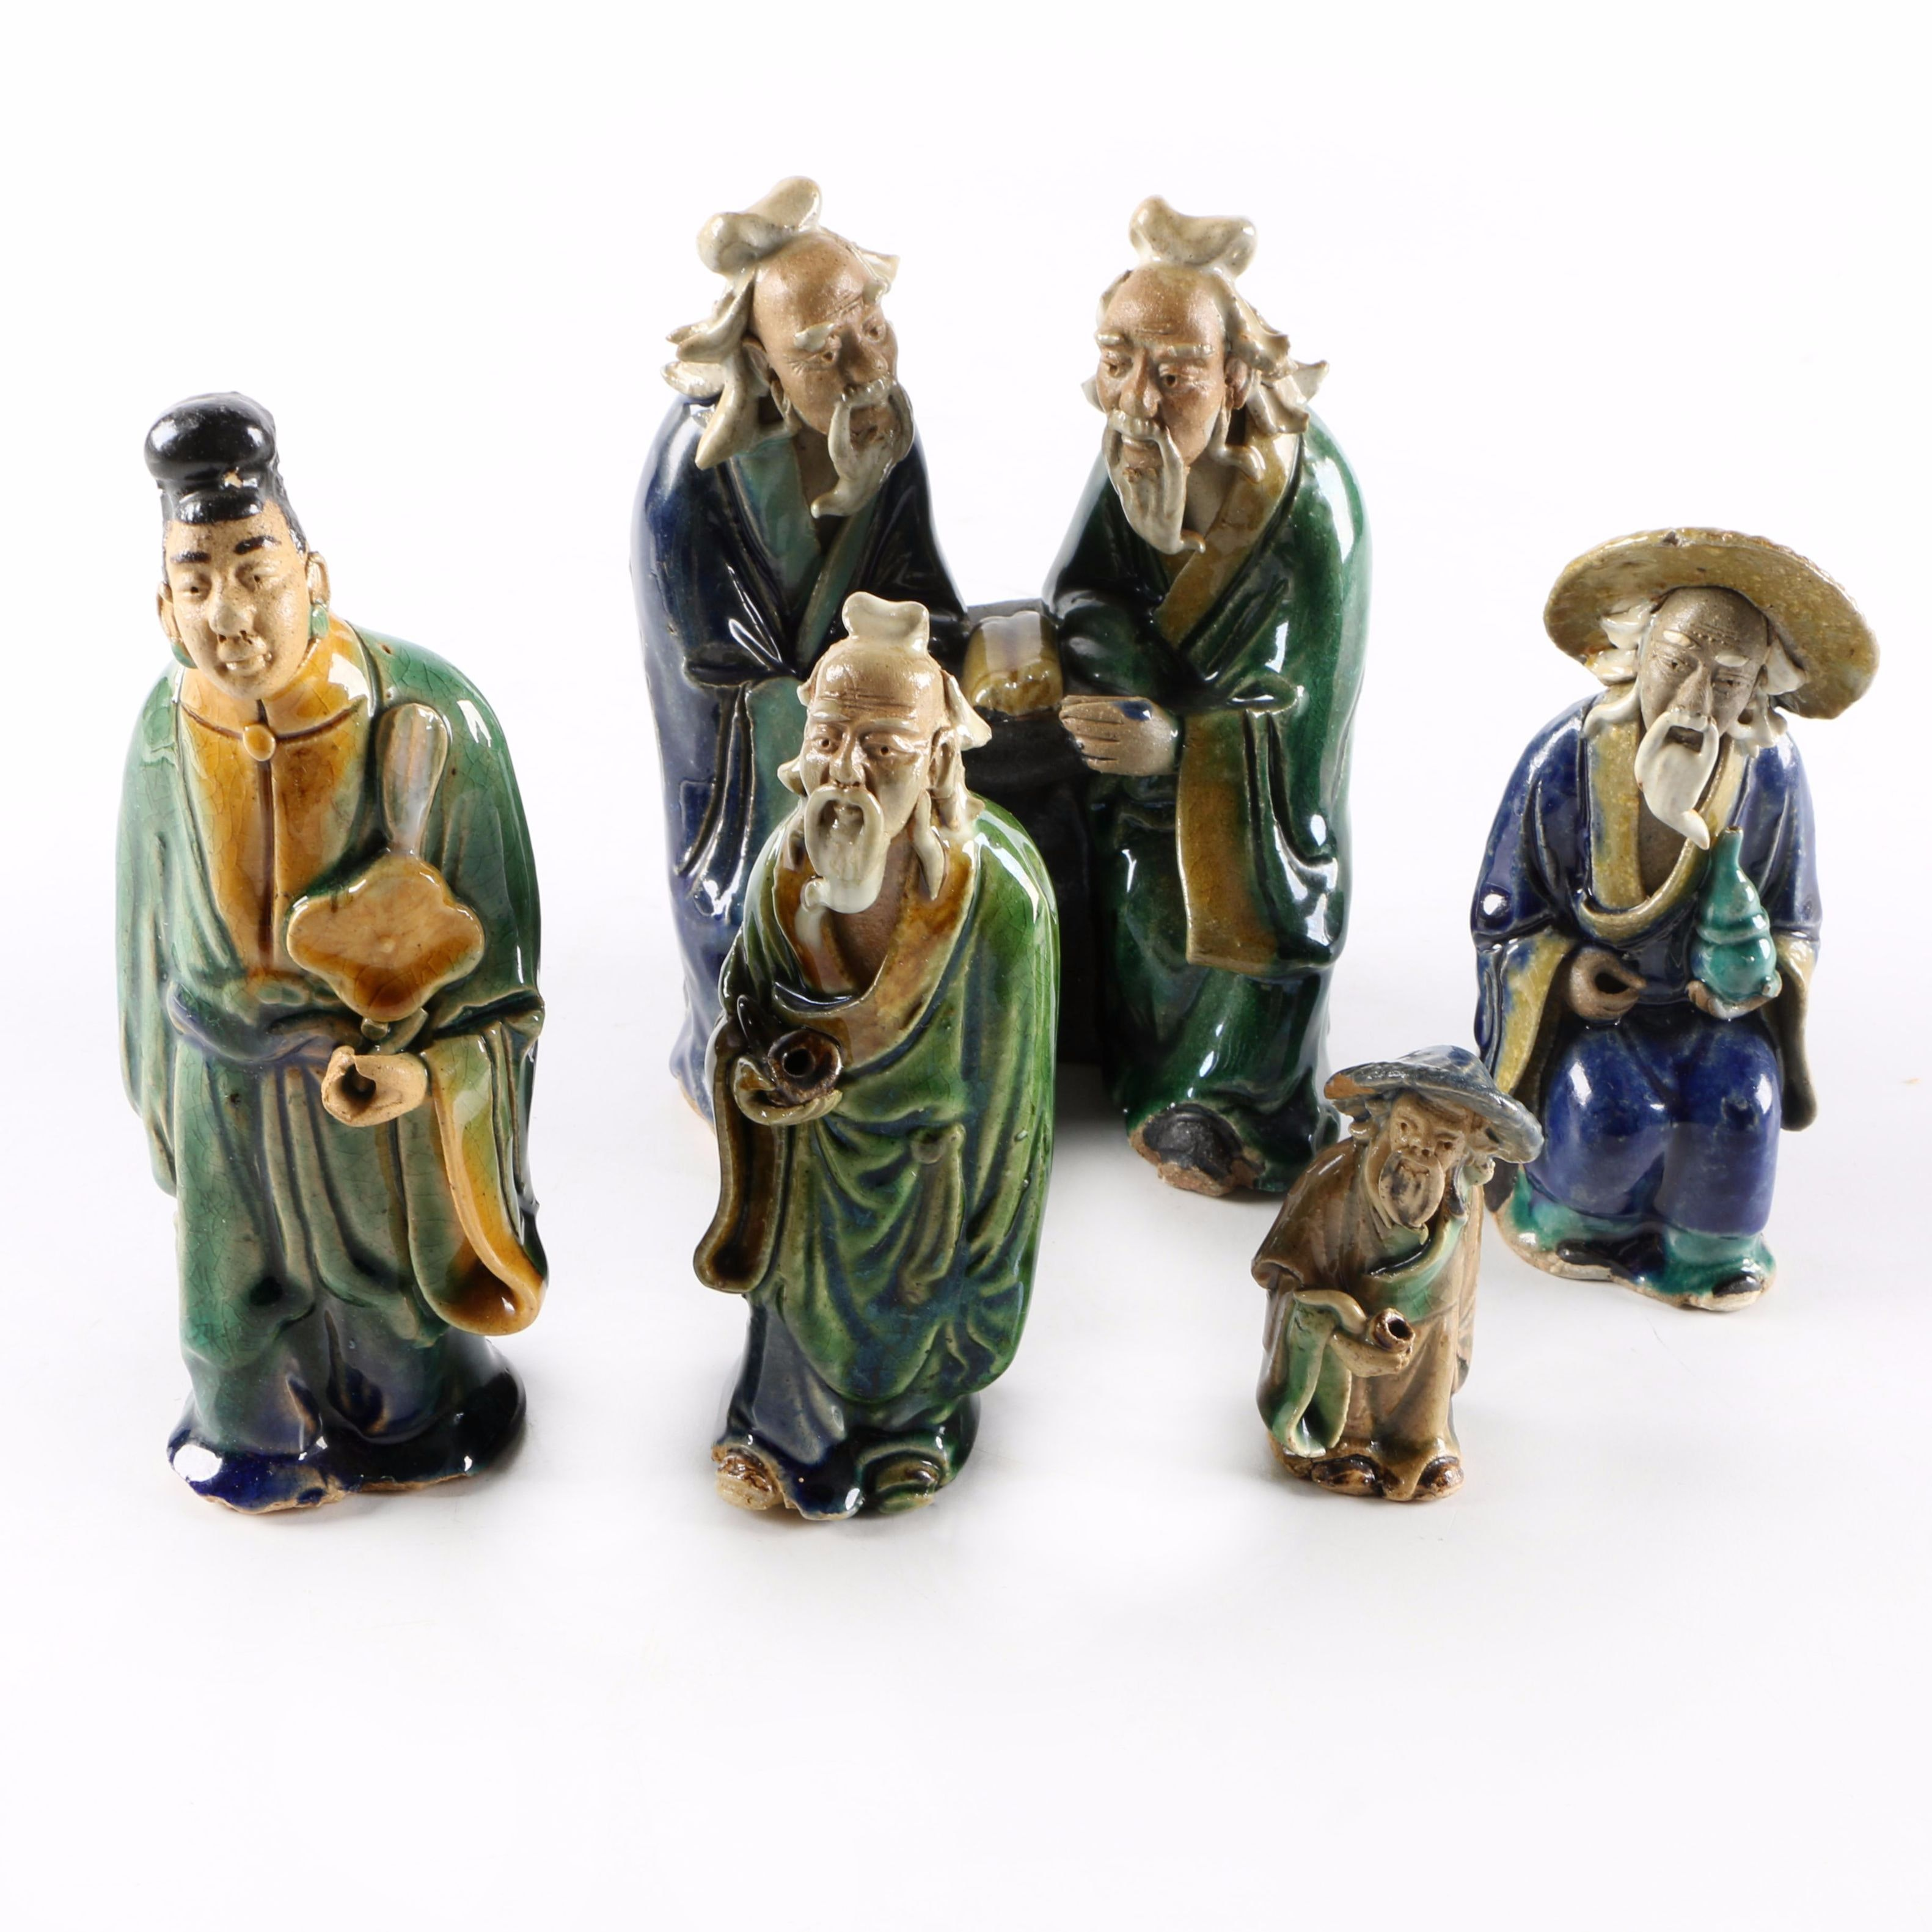 Chinese Shiwan Ware Ceramic Figurine Assortment